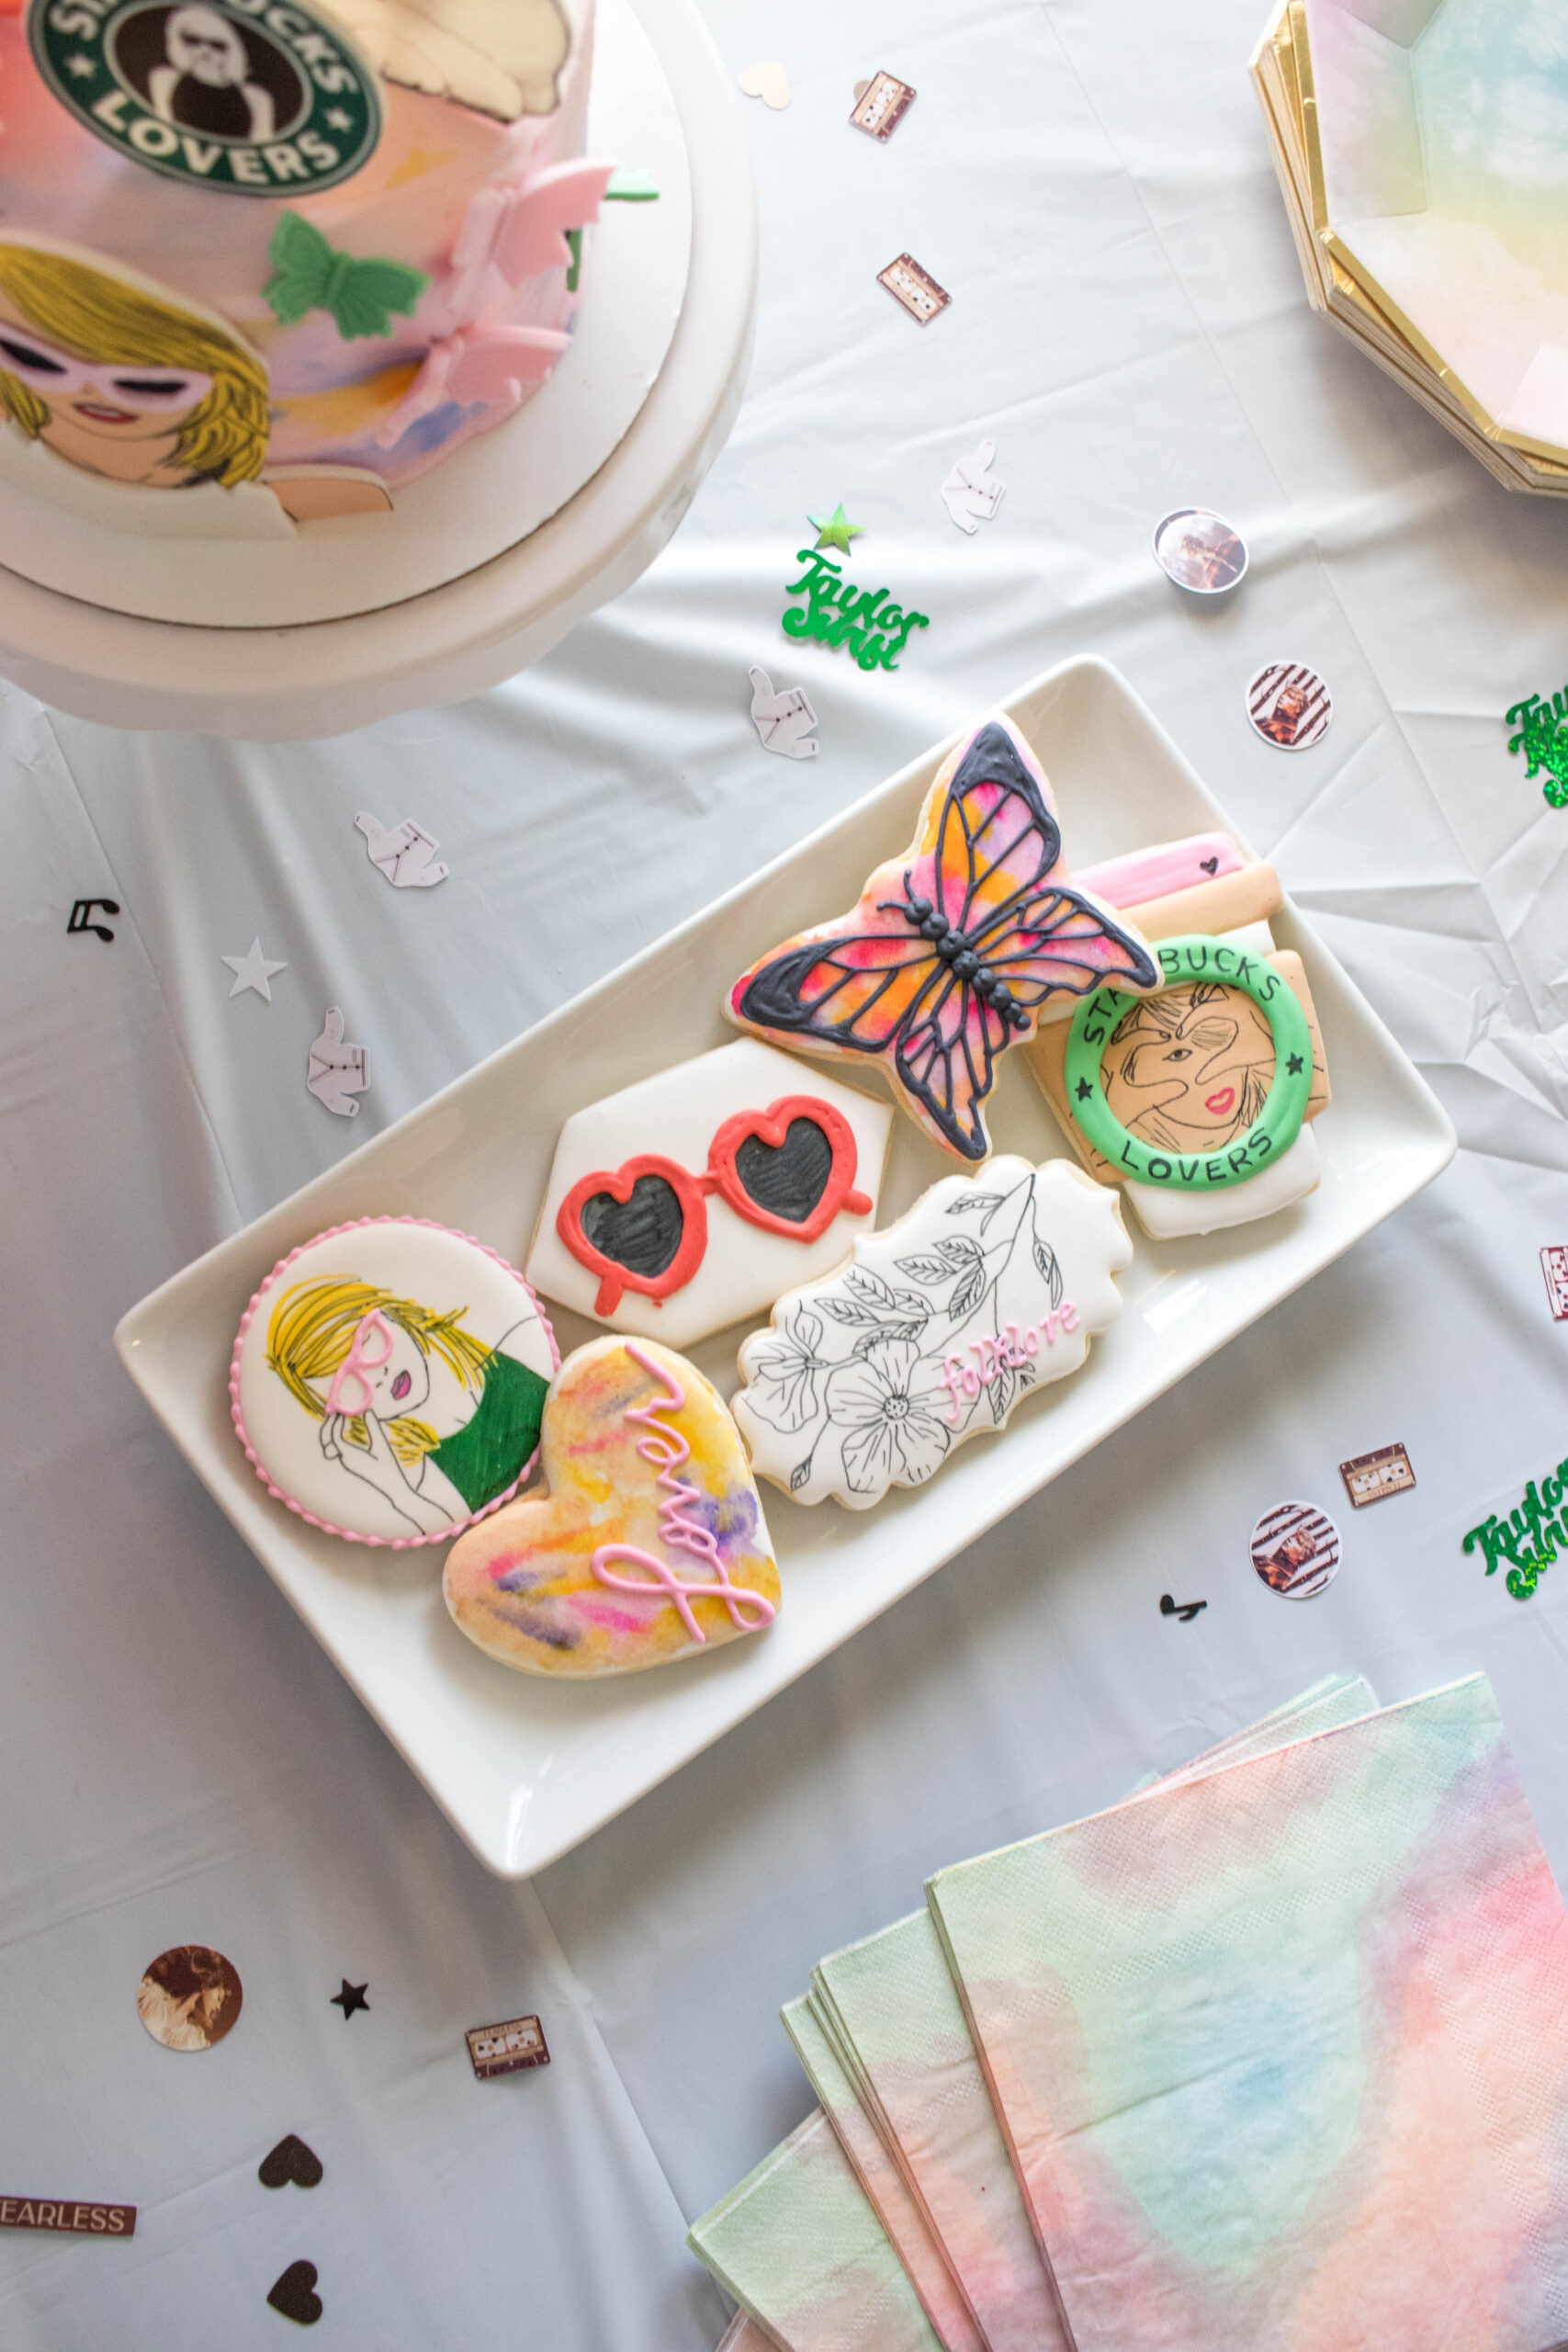 taylor swift themed birthday party #taylorswift #birthdayparty #taylorswiftbirthday